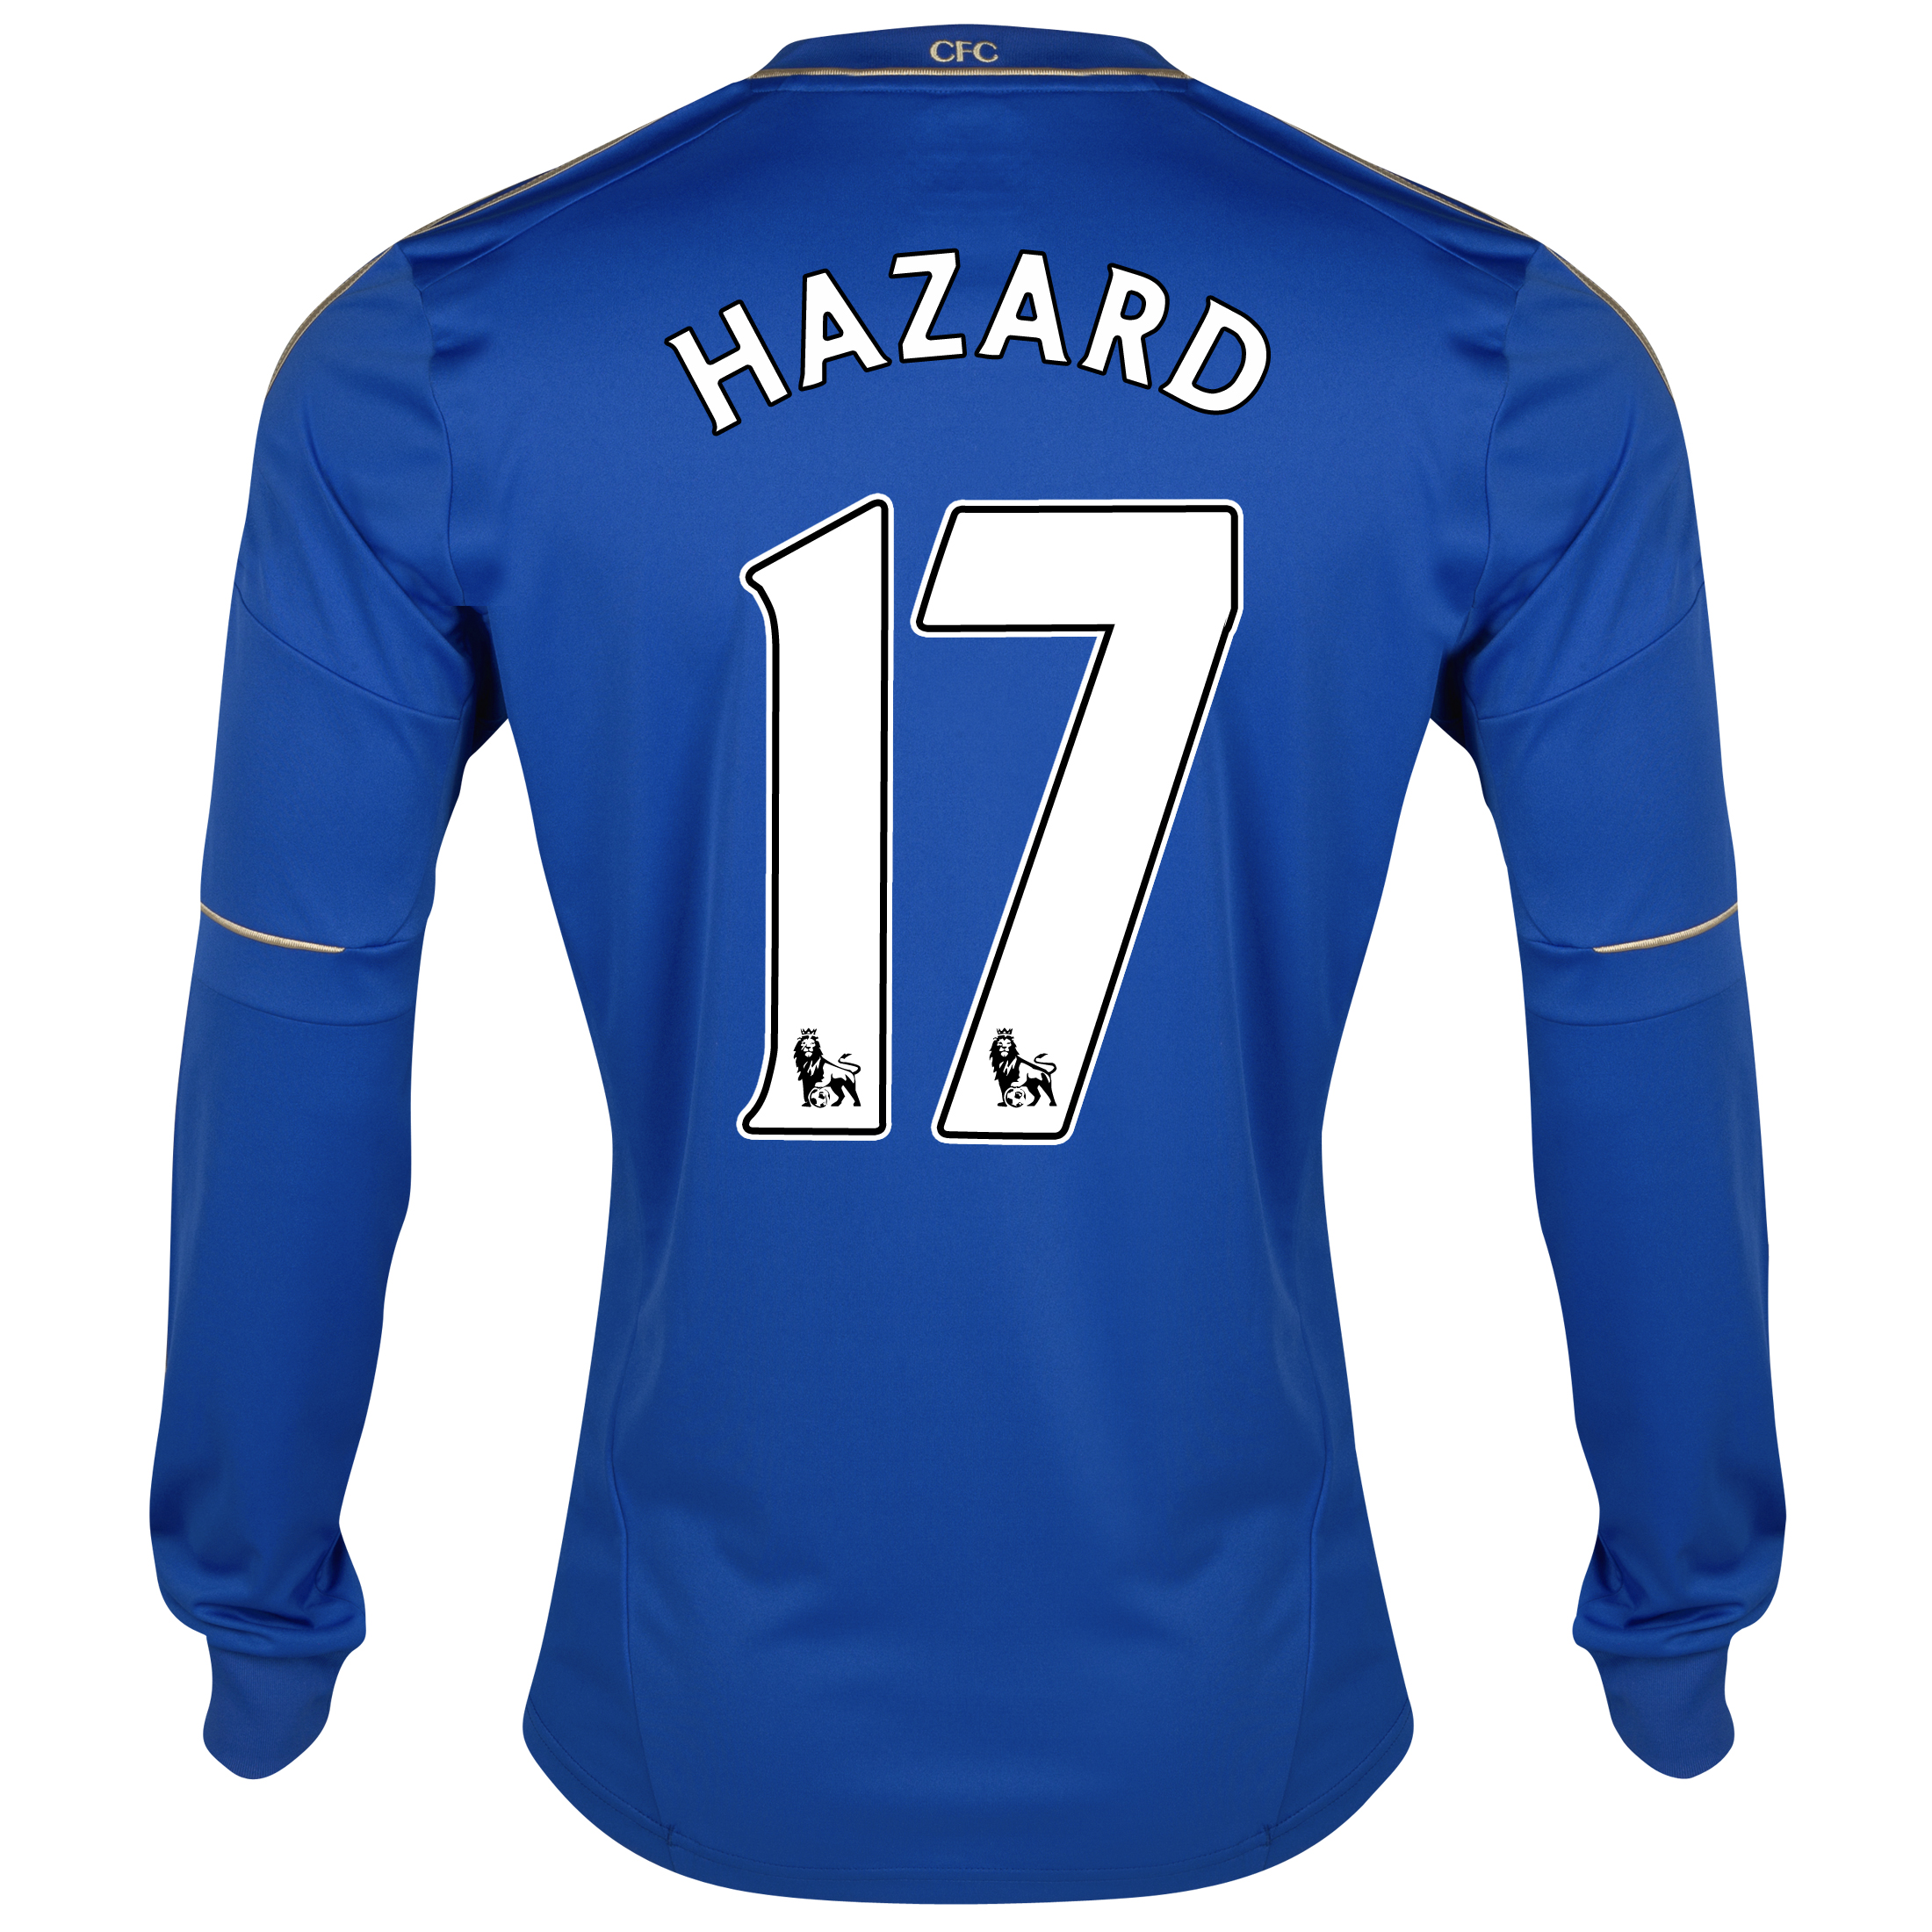 Chelsea Home Shirt 2012/13 - Long Sleeved - Youths with Hazard 17 printing